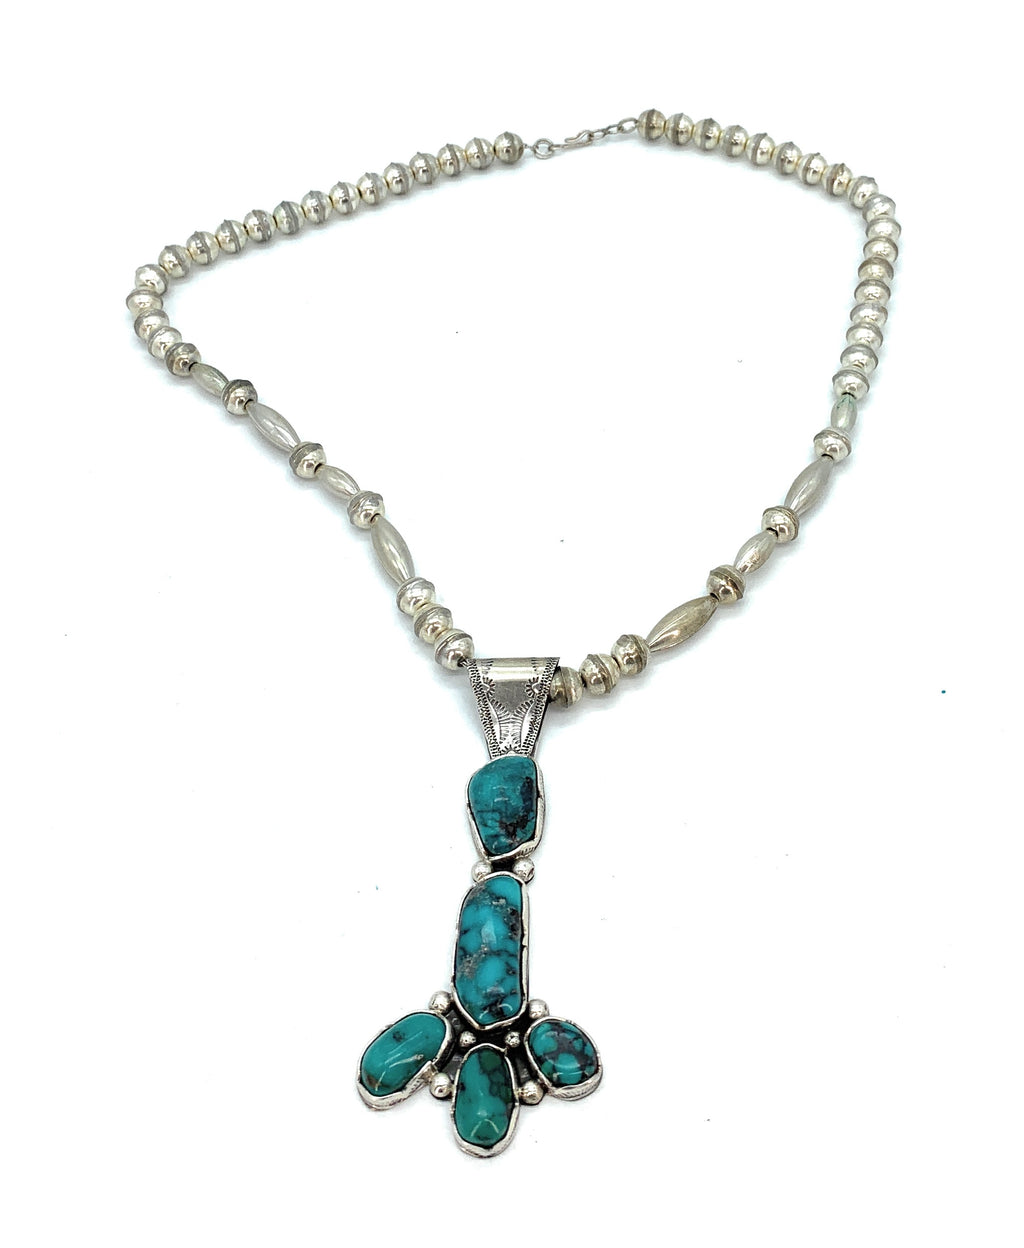 Vintage Old Pawn Sterling Silver & Turquoise Bead & Pendant Necklace